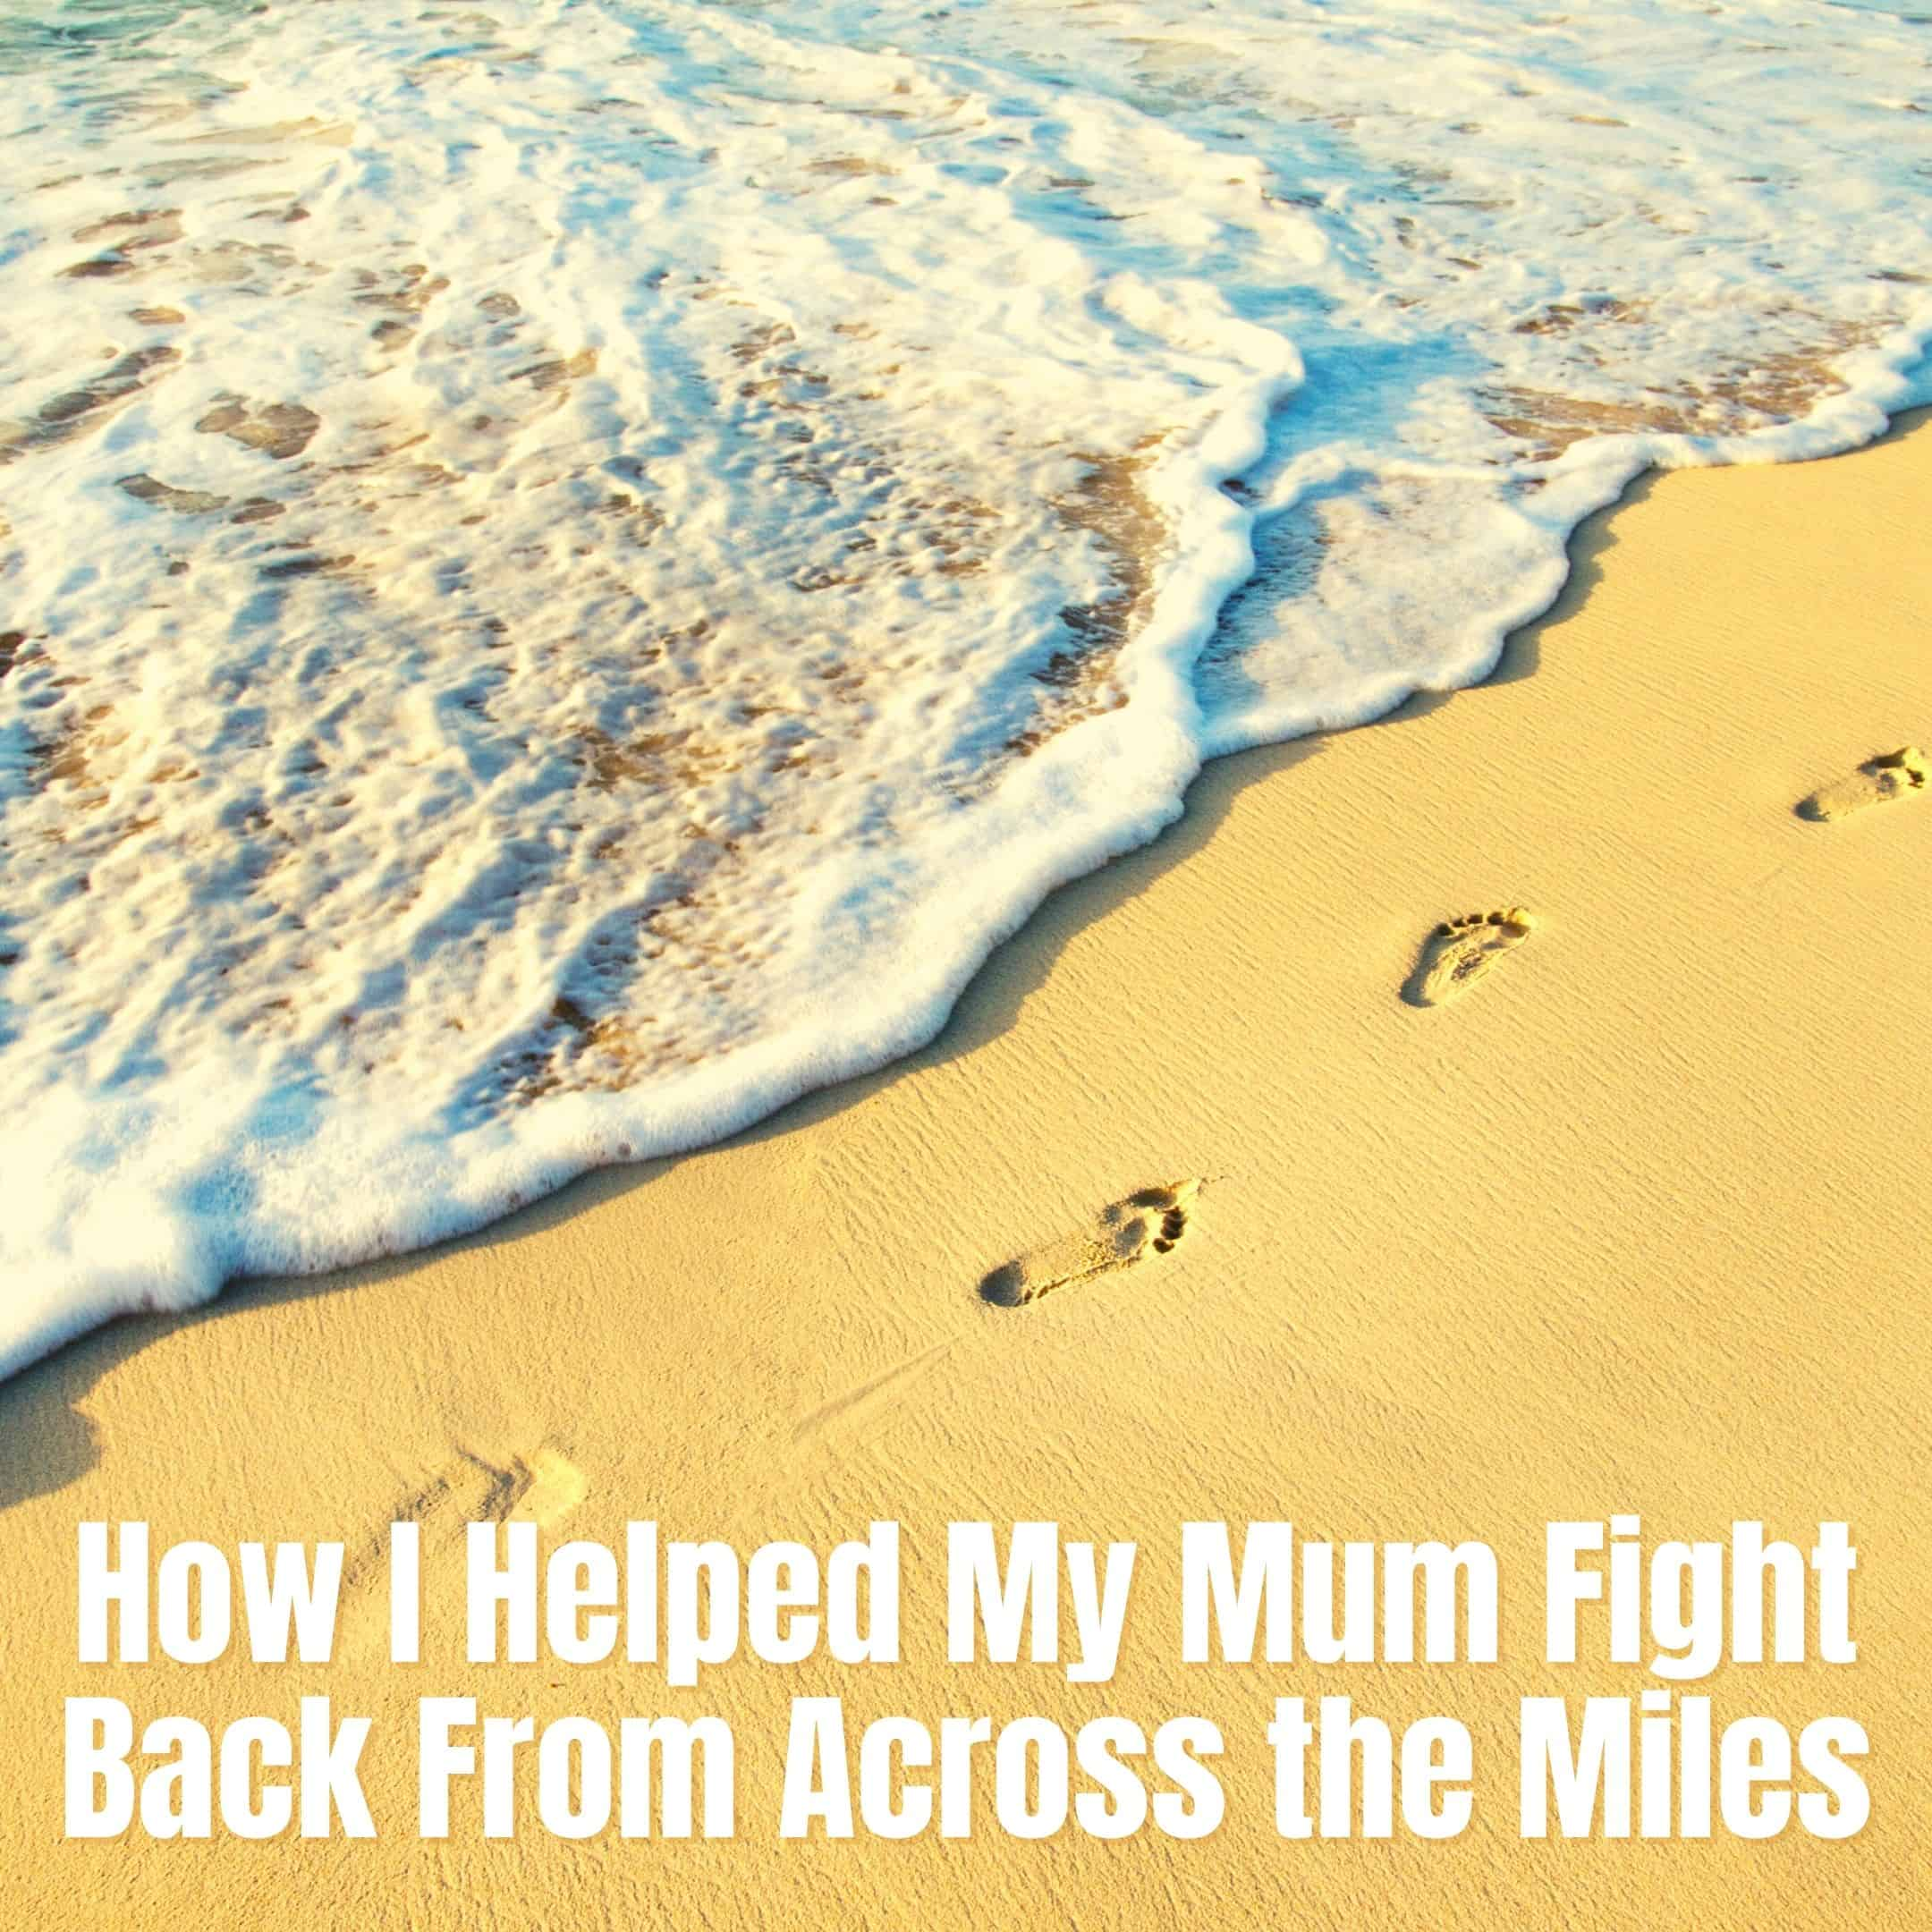 Mum, Cancer And Me: How I Helped My Mum Fight Back From Across The Miles